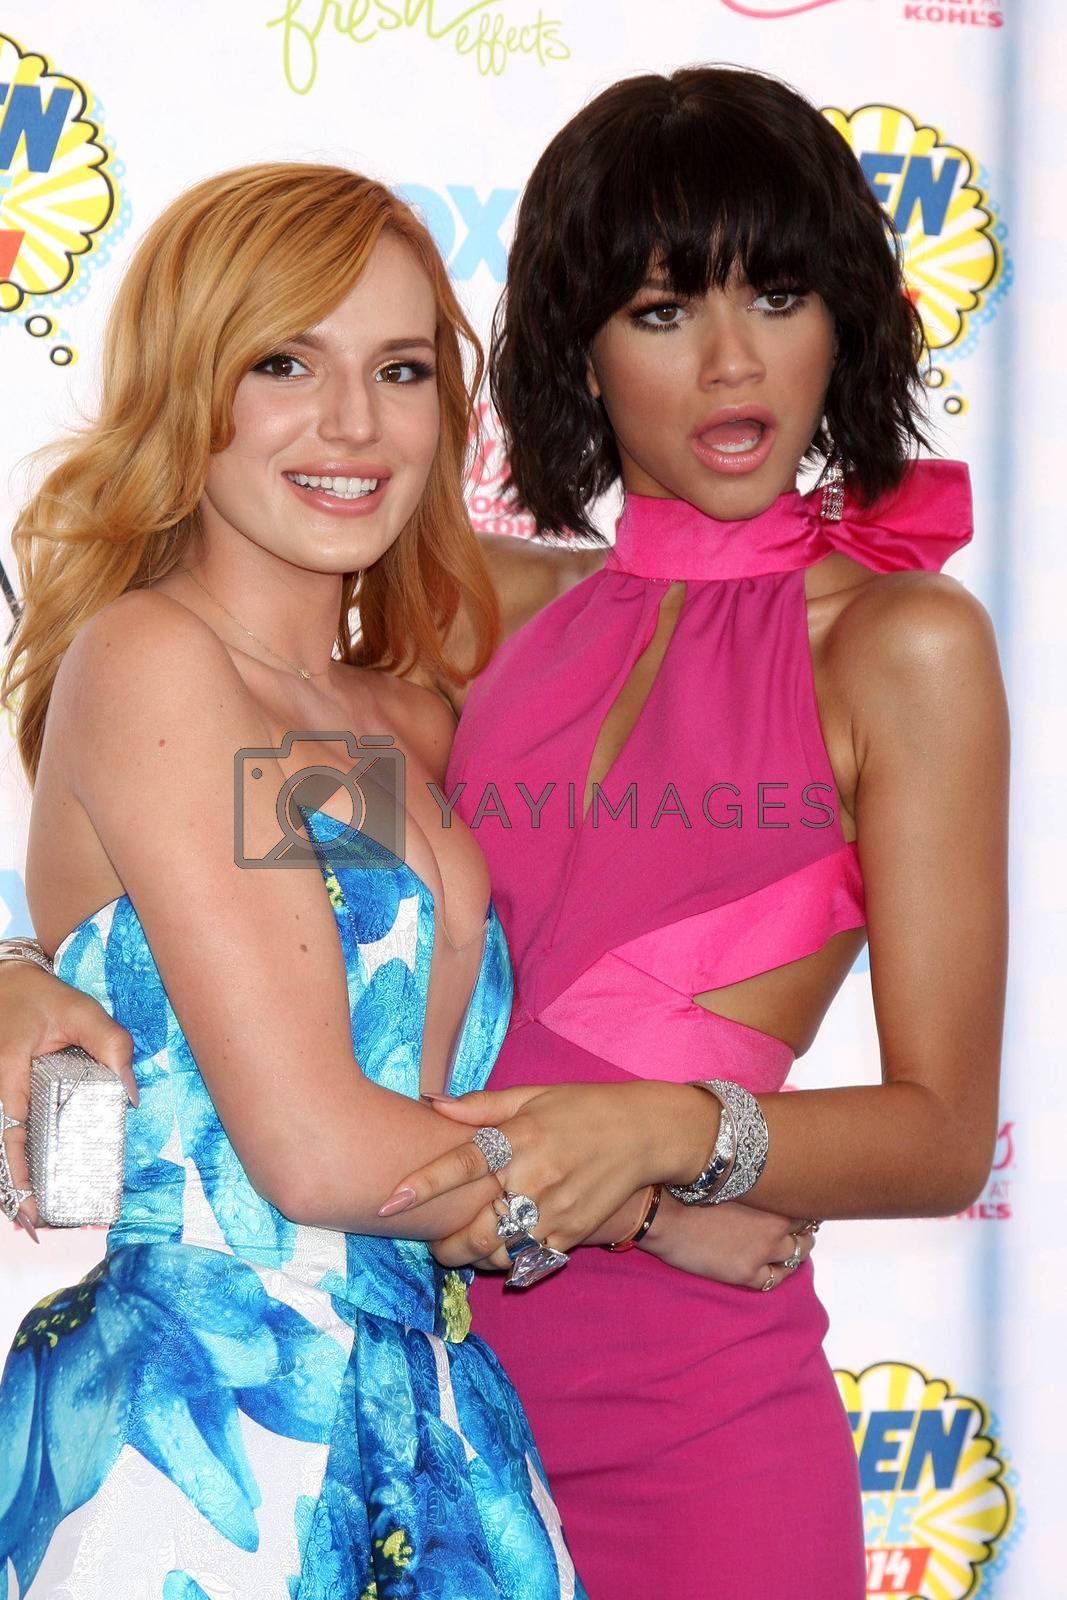 Royalty free image of Bella Thorne, Zendaya at the 2014 Teen Choice Awards Arrivals, Shrine Auditorium, Los Angeles, CA 08-10-14/ImageCollect by ImageCollect